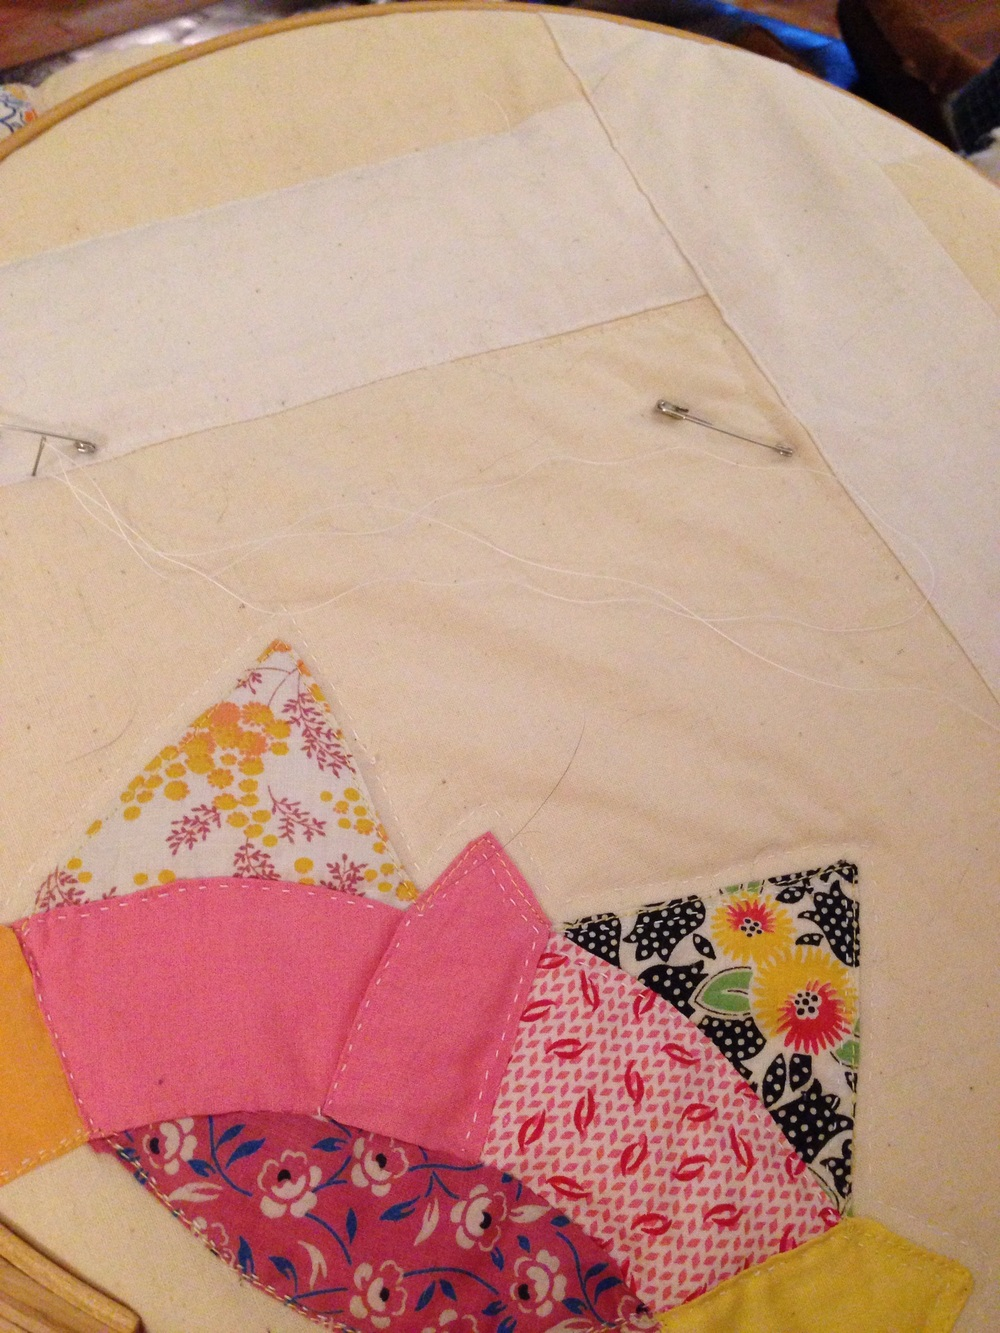 Still deciding which pattern to quilt on the borders.